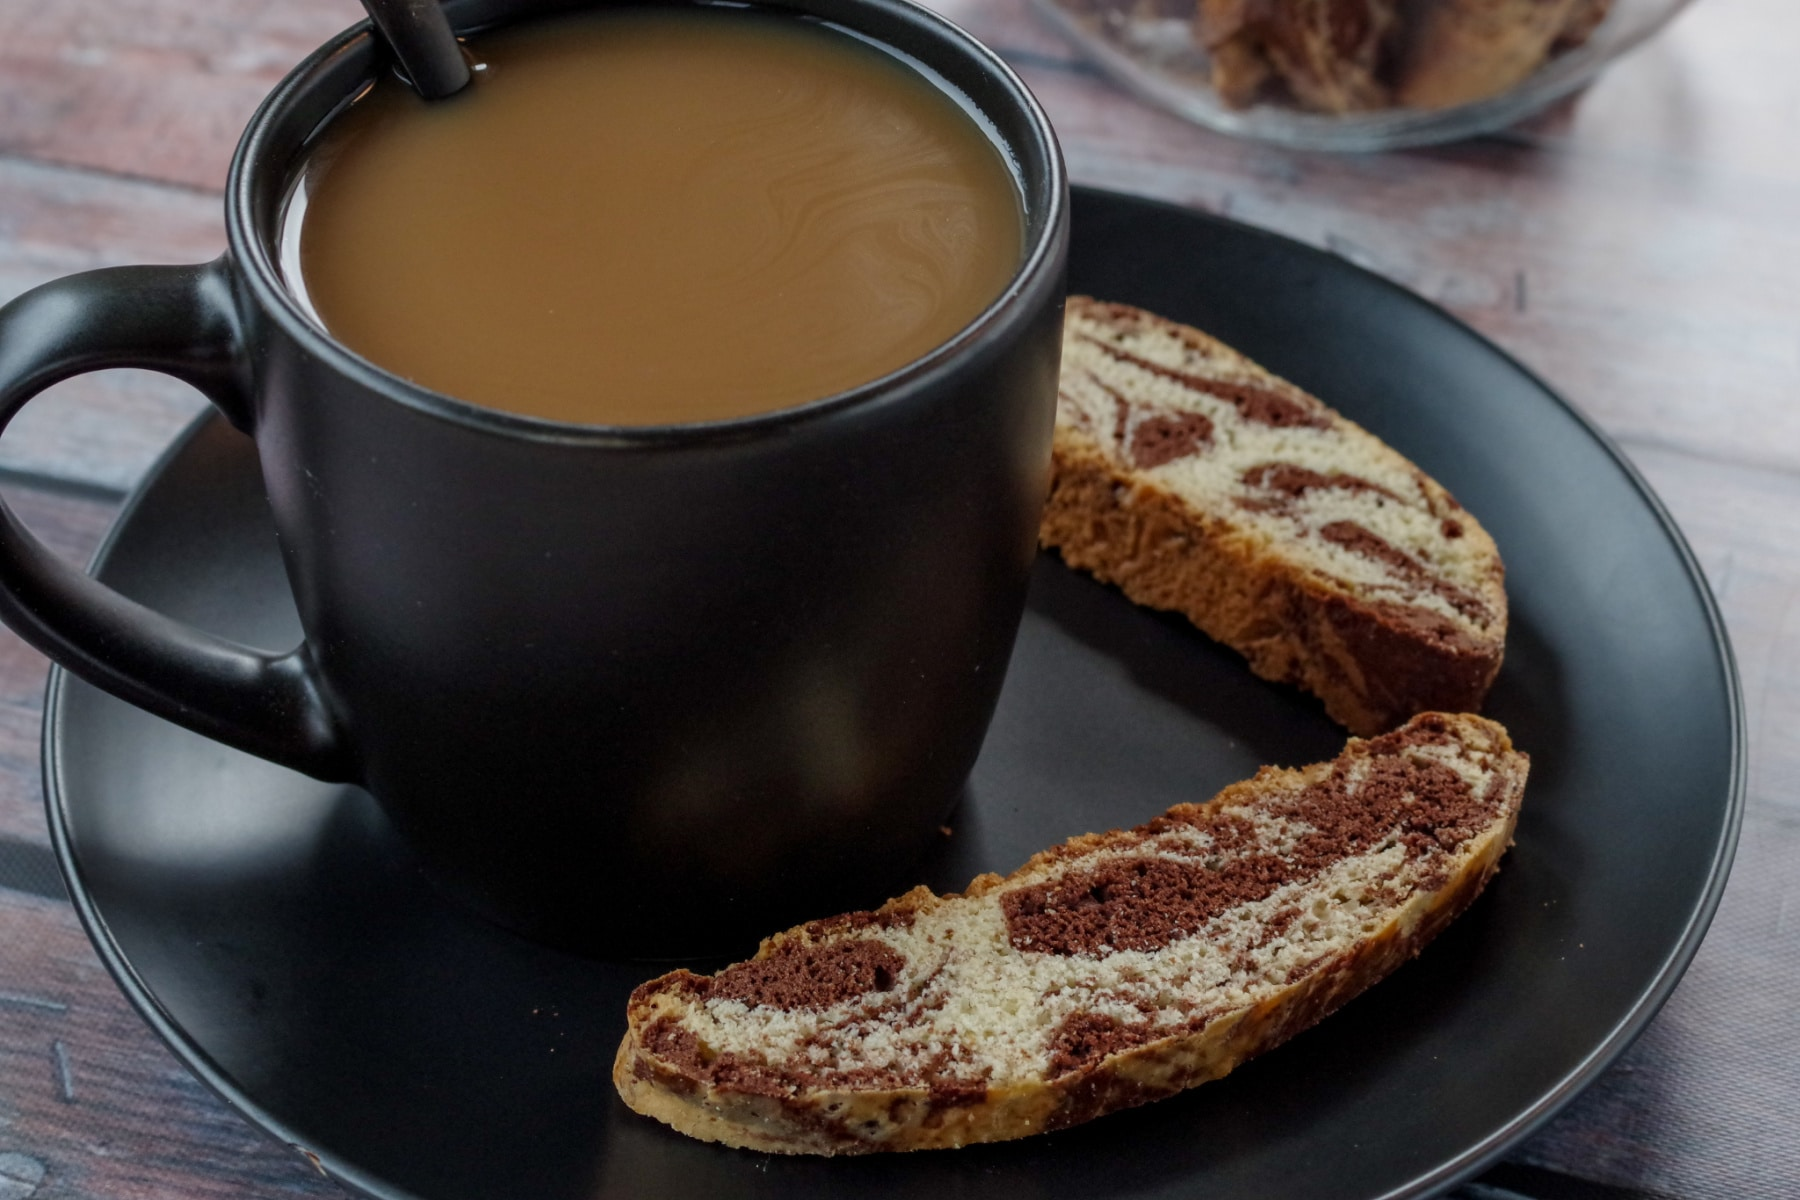 cup of coffee in a black mug on a black plate with 2 pieces of chocolate marble biscotti on the plate and a jar of biscotti in background